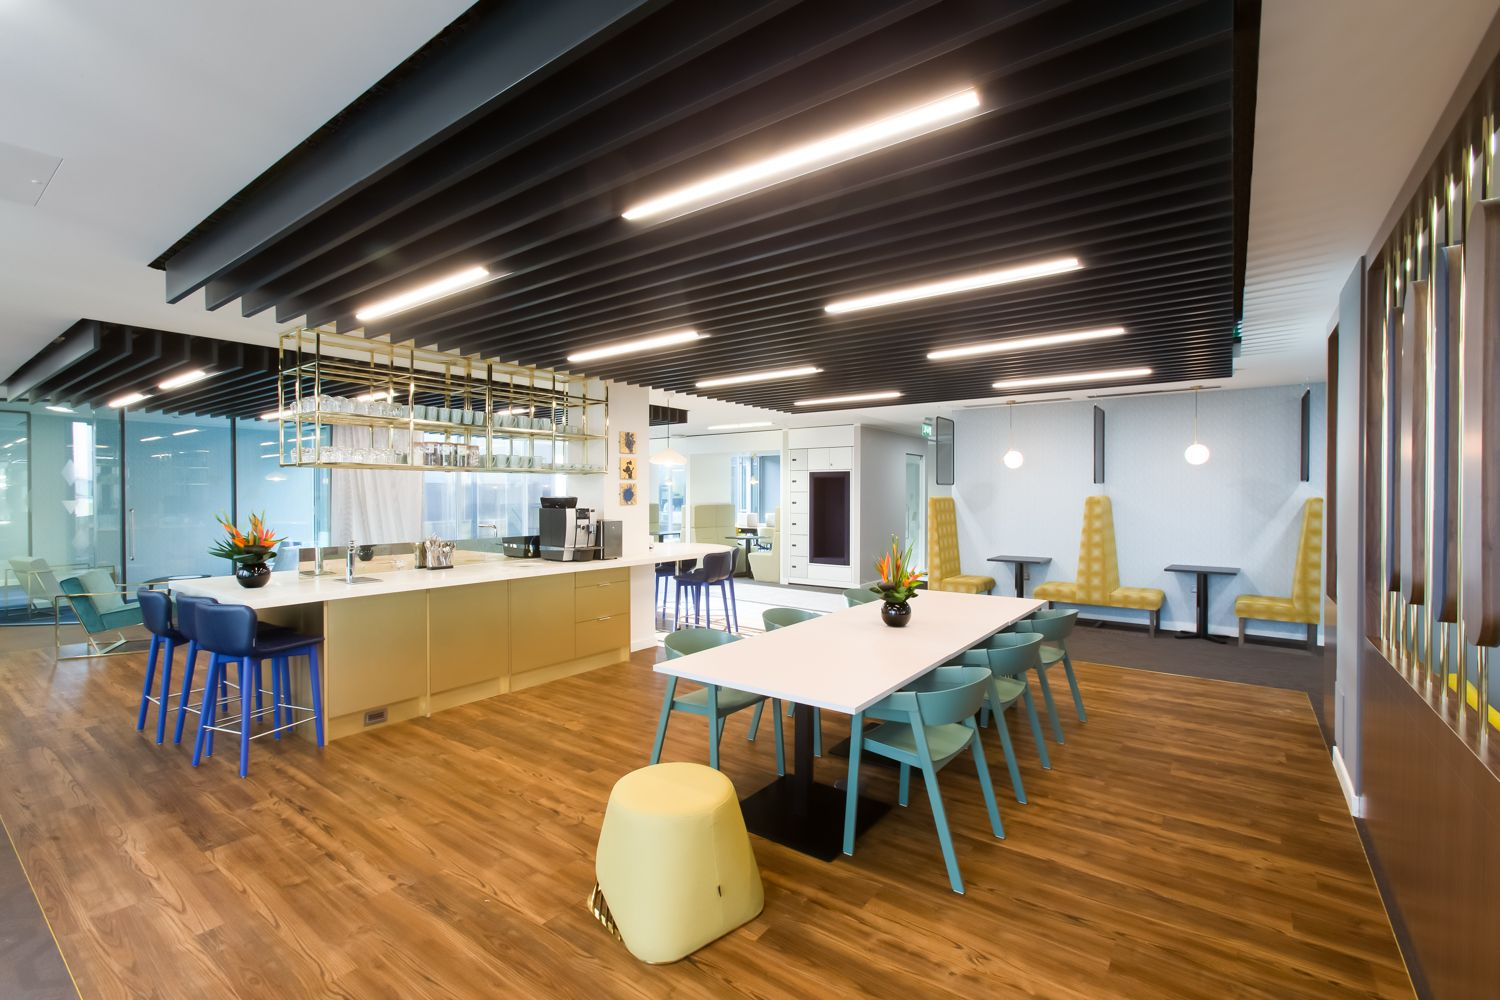 contemporary office spaces. Contemporary Office Space In Victoria, London. Fit Out Completed By C And S Ltd Spaces I